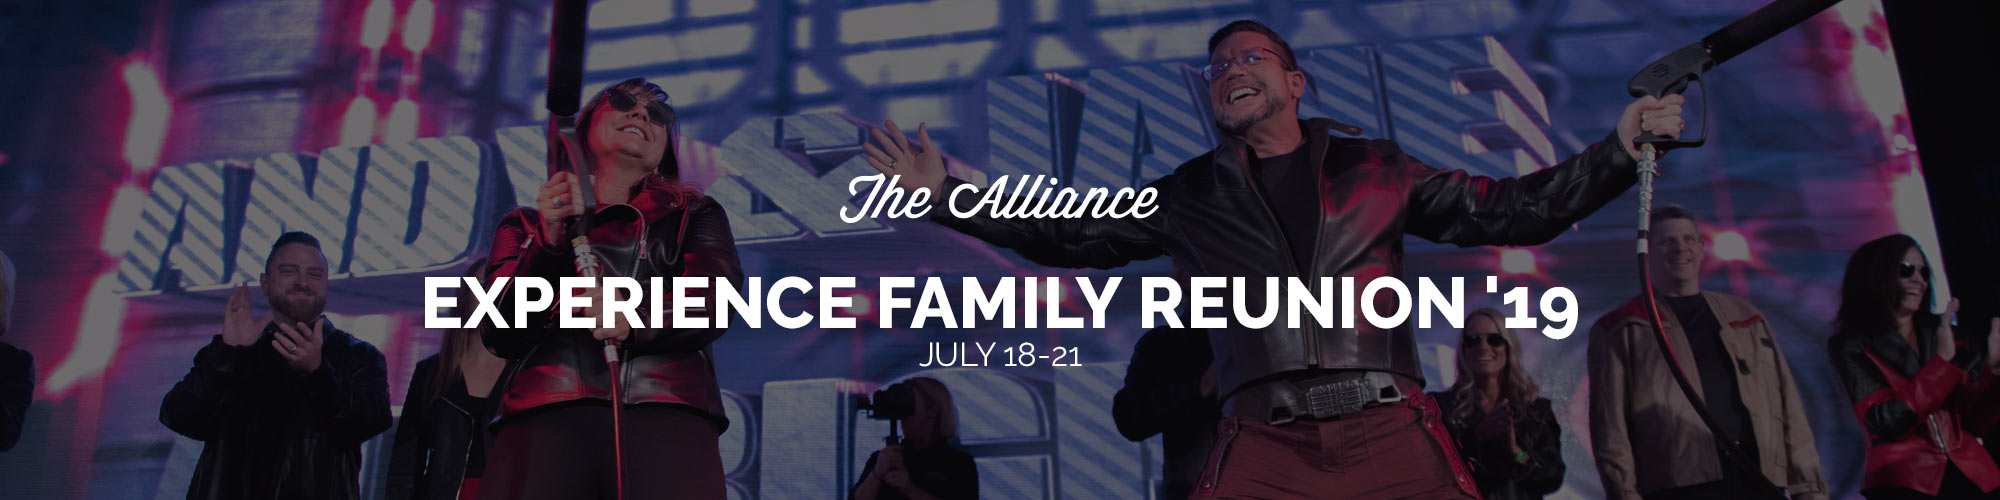 Family Reunion - July 18 - 21, 2019